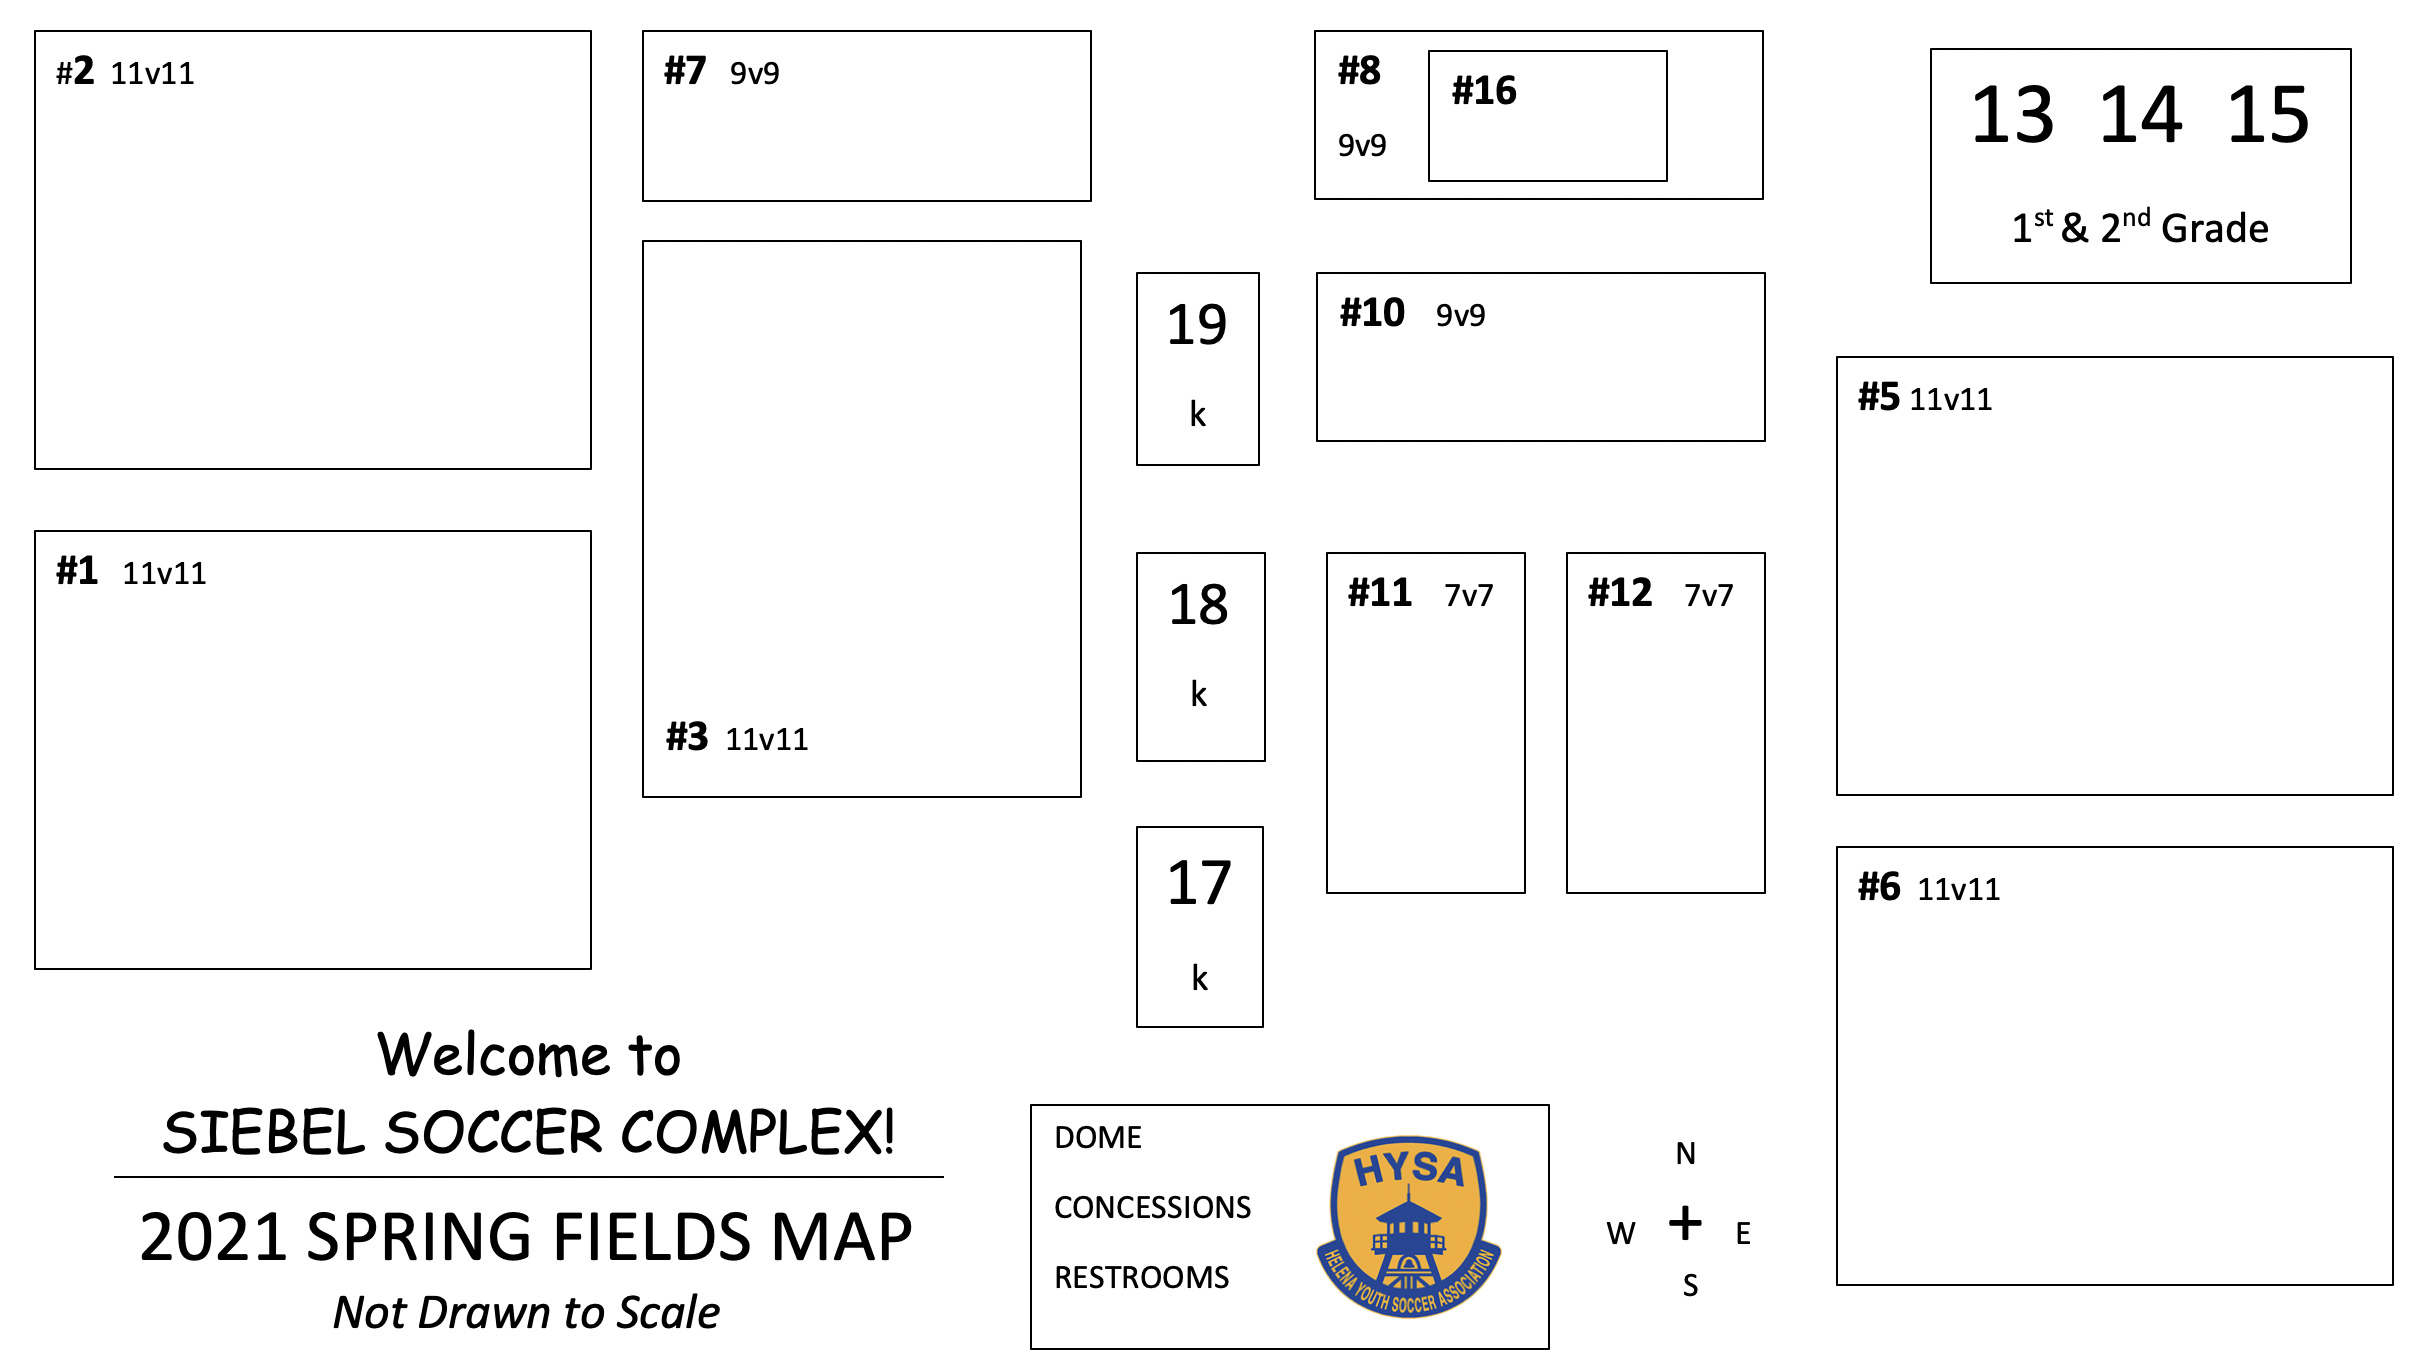 2021 Spring Fields Map